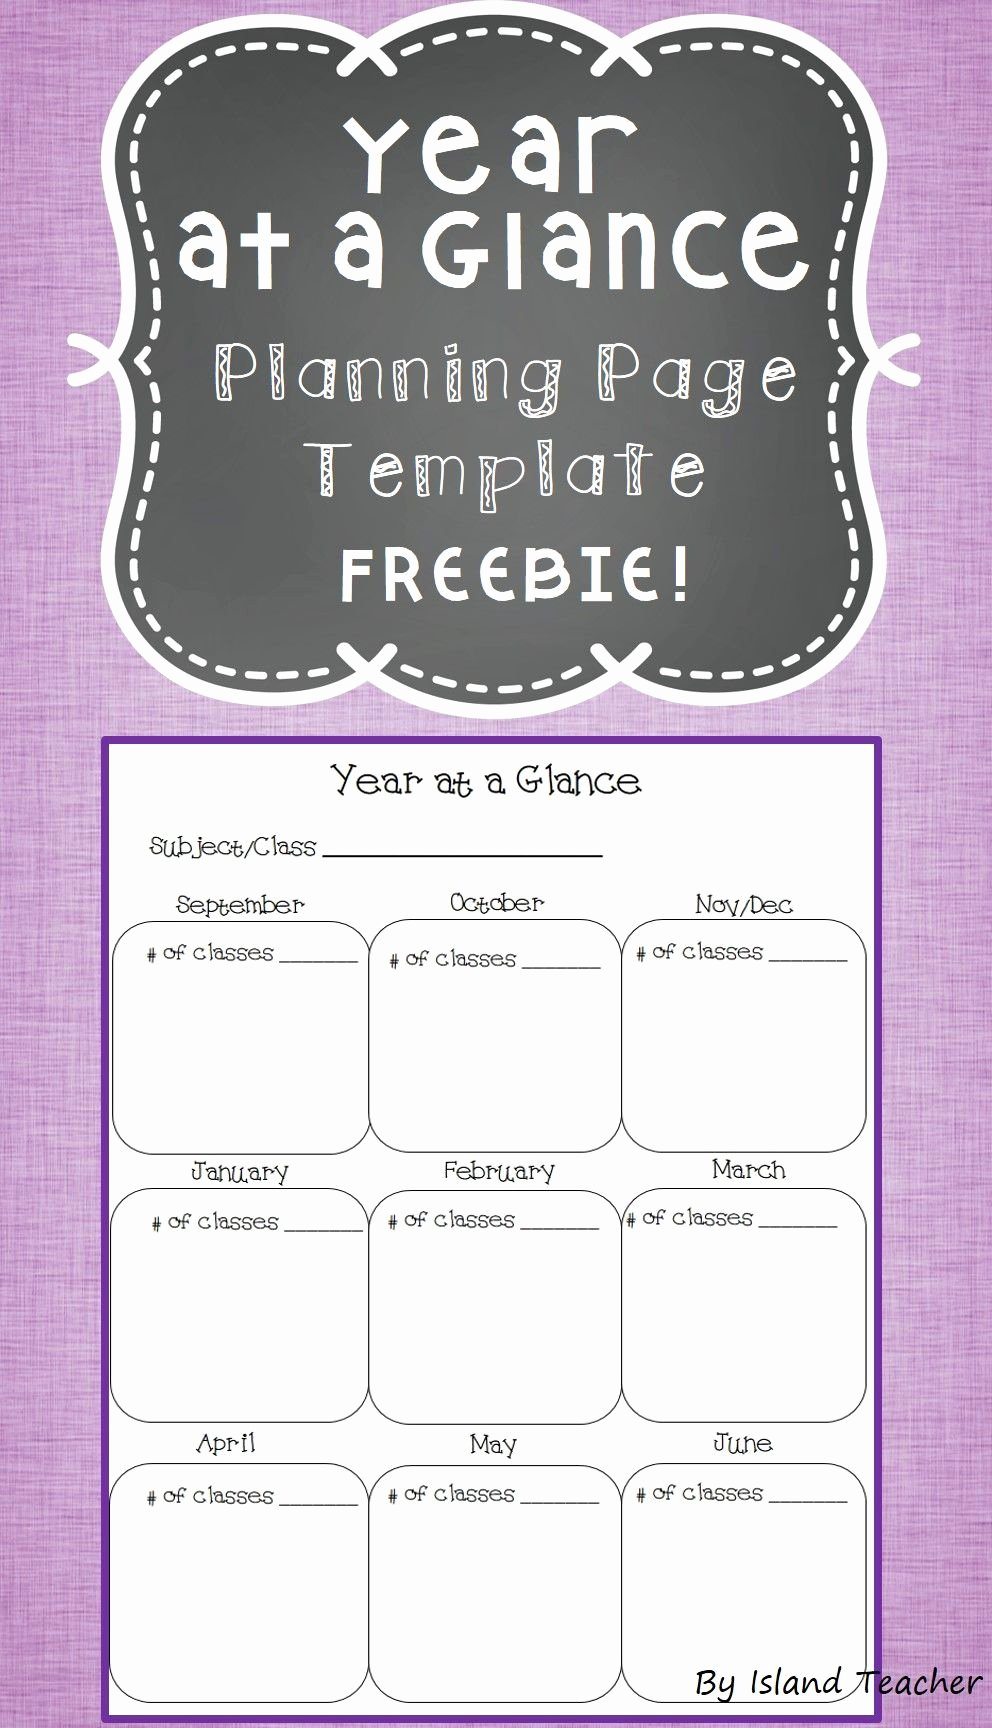 Co Teaching Planning Template Lovely Year at A Glance Planning Page Template Freebie